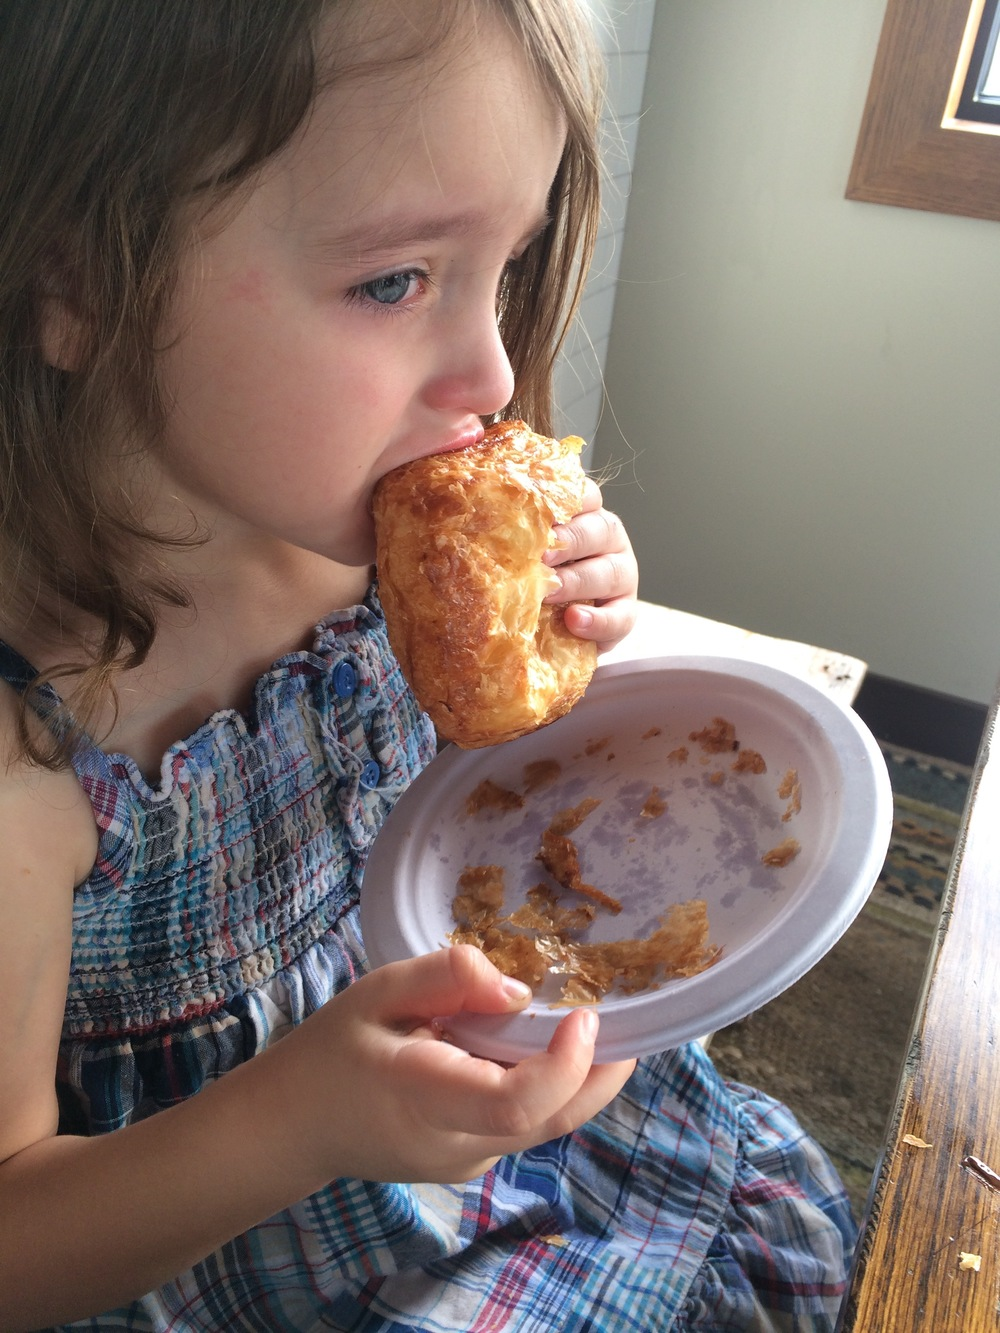 Begrudgingly Sorrowful Eating could be an Olympic Sport for my child